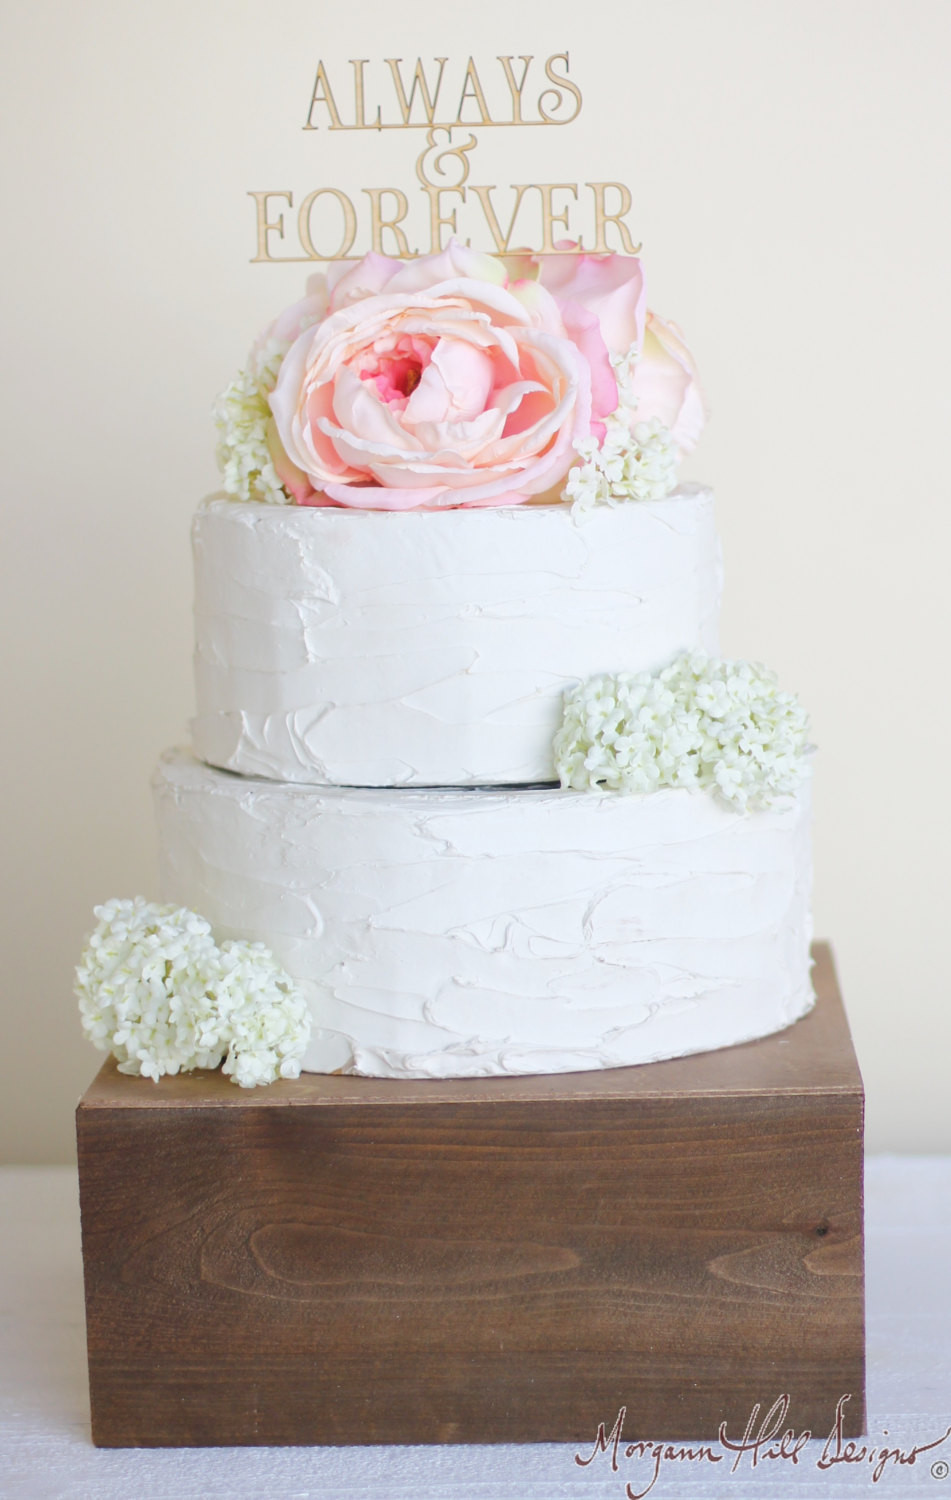 Wedding Cakes toppers Best 20 27 Of the Cutest Wedding Cake toppers You Ll Ever See